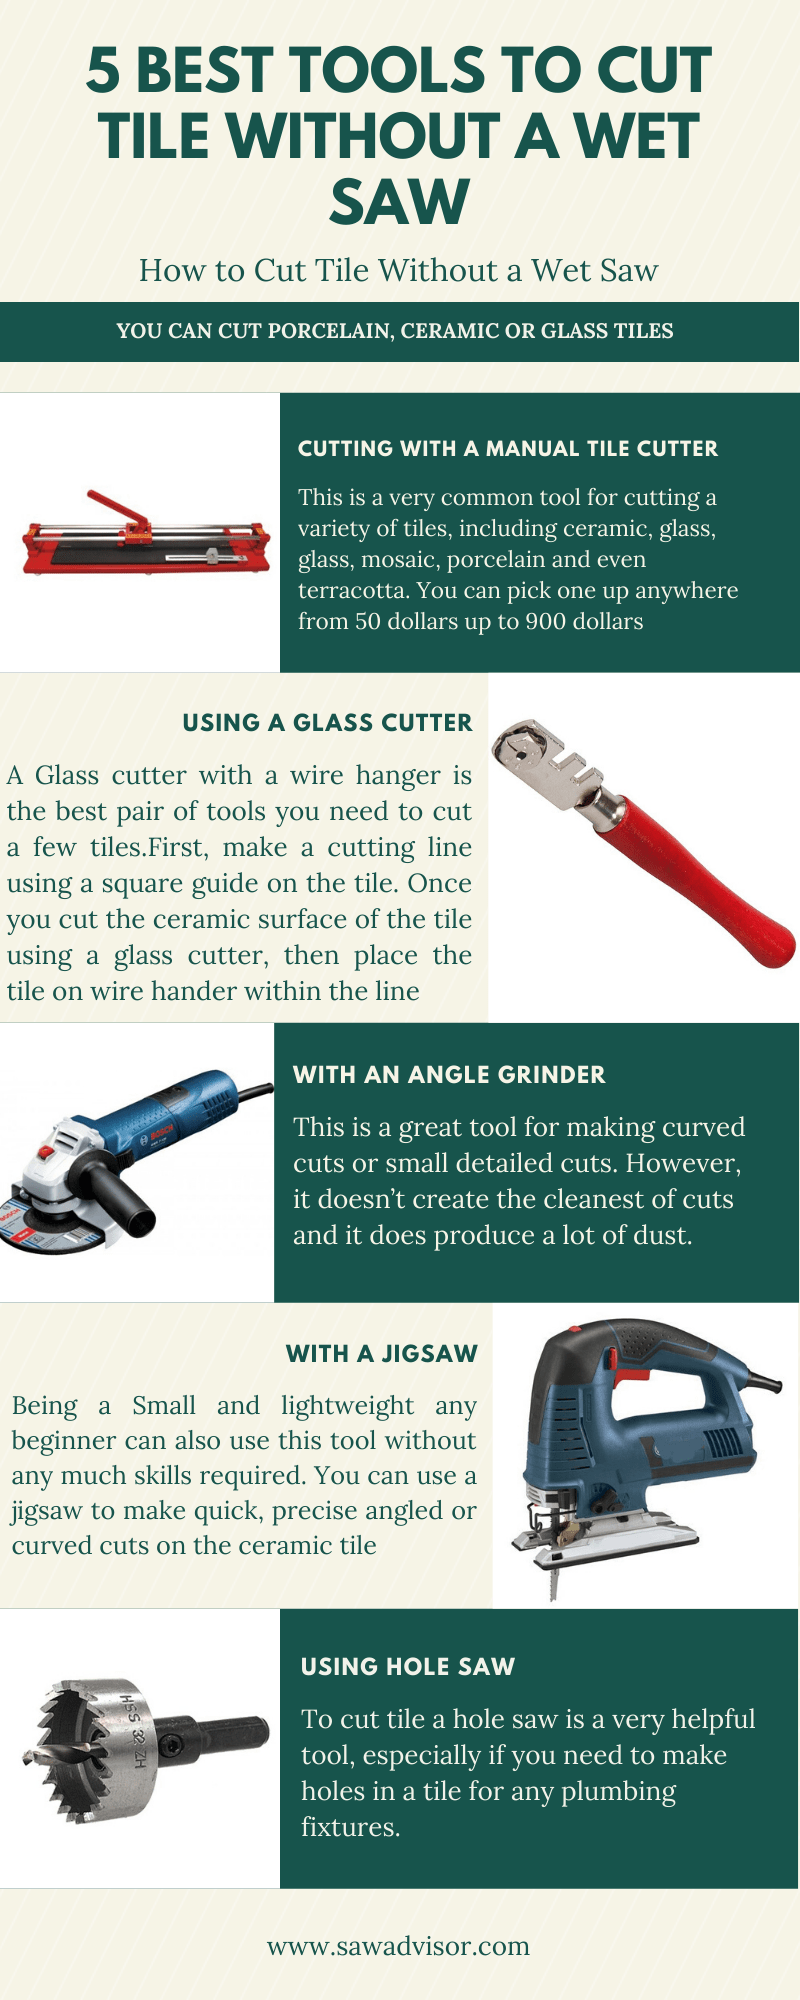 5 best tools to cut tiles infographic